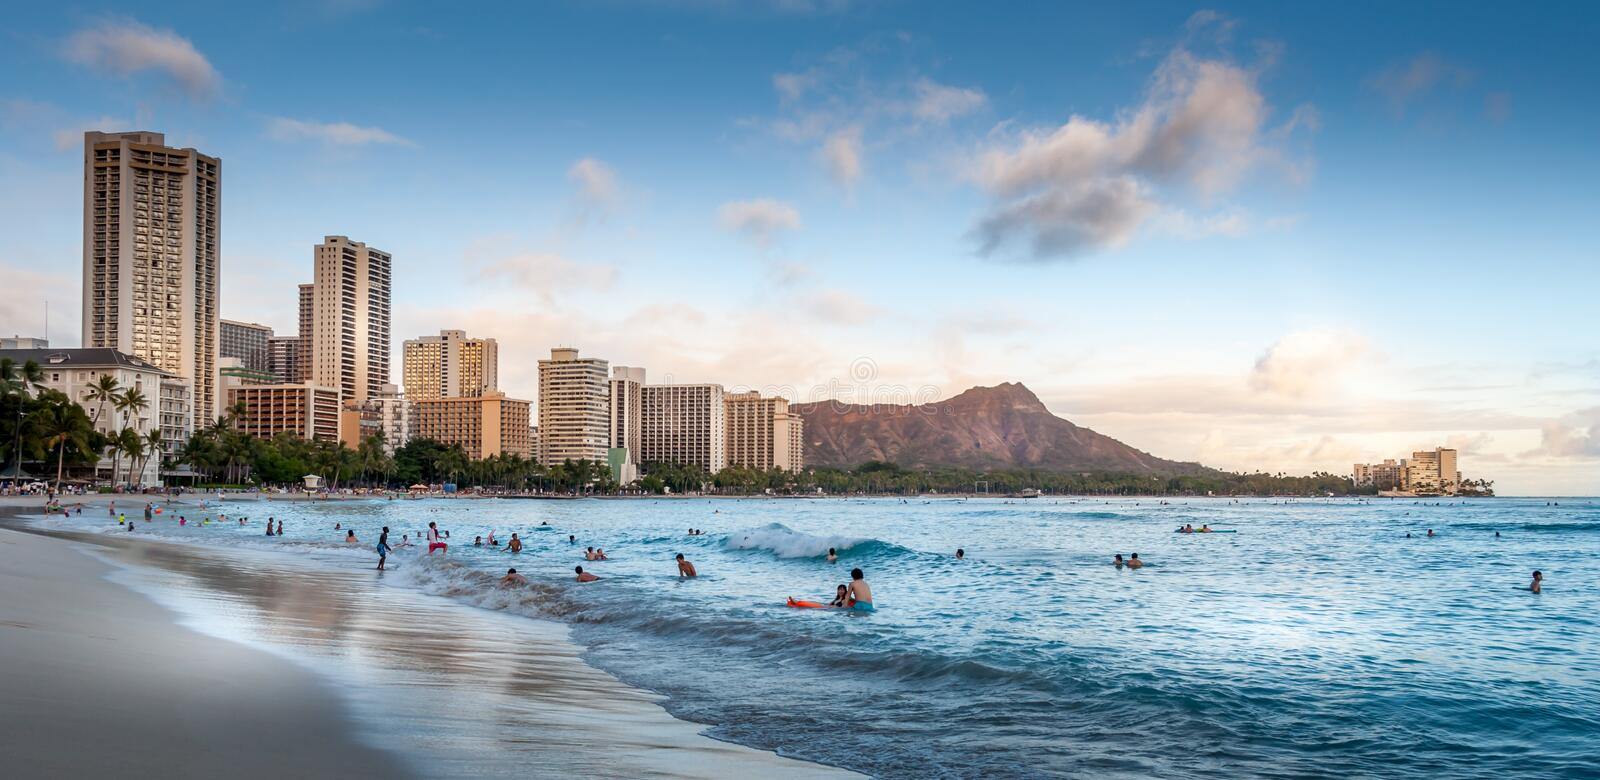 Plage de Waikiki - Hawaï photo stock